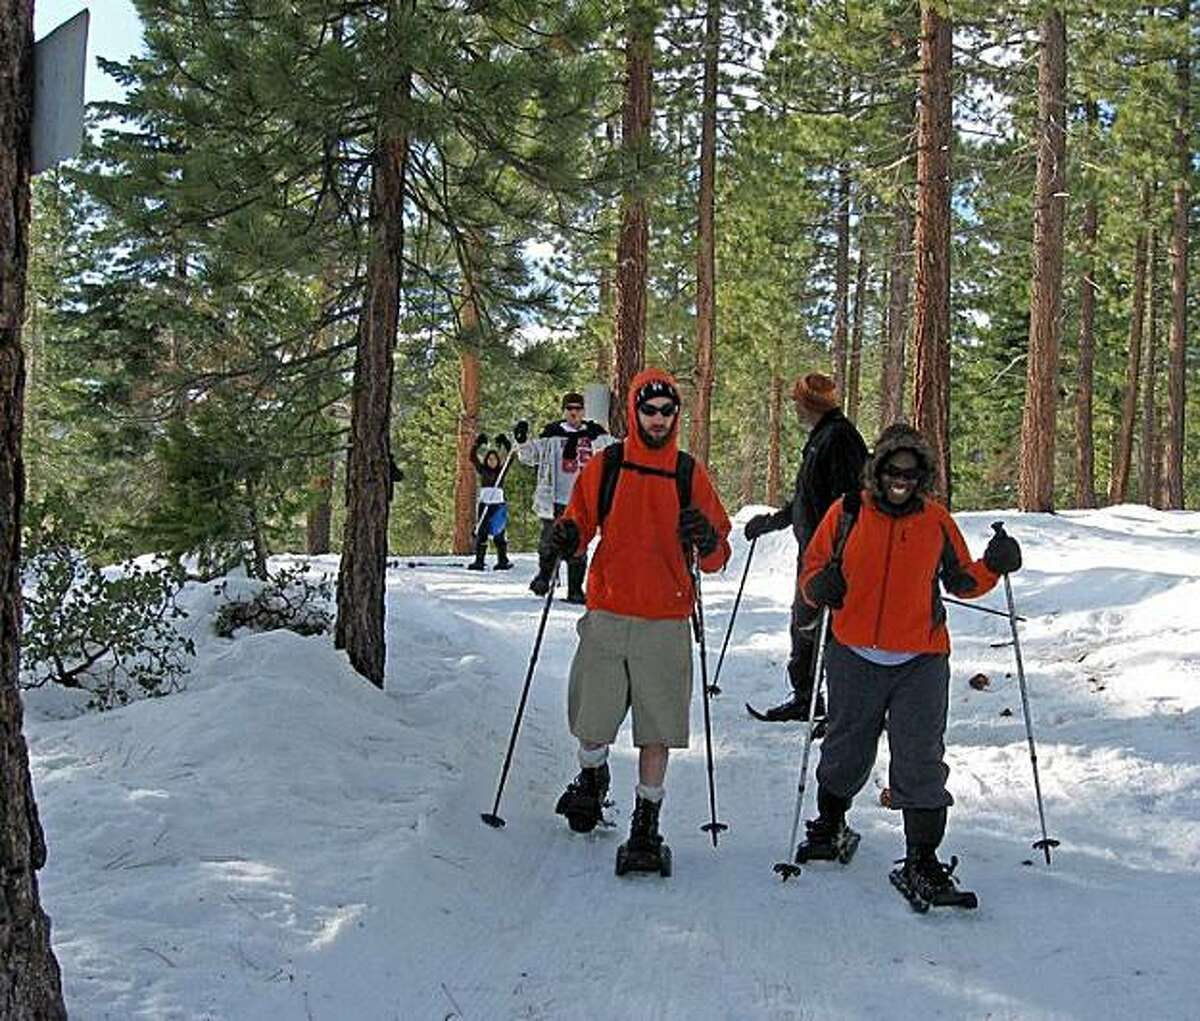 Sierra snowshoeing tours day or night- re offered by a Tahoe company through the end of snow season. Tahoe Adventure Co.